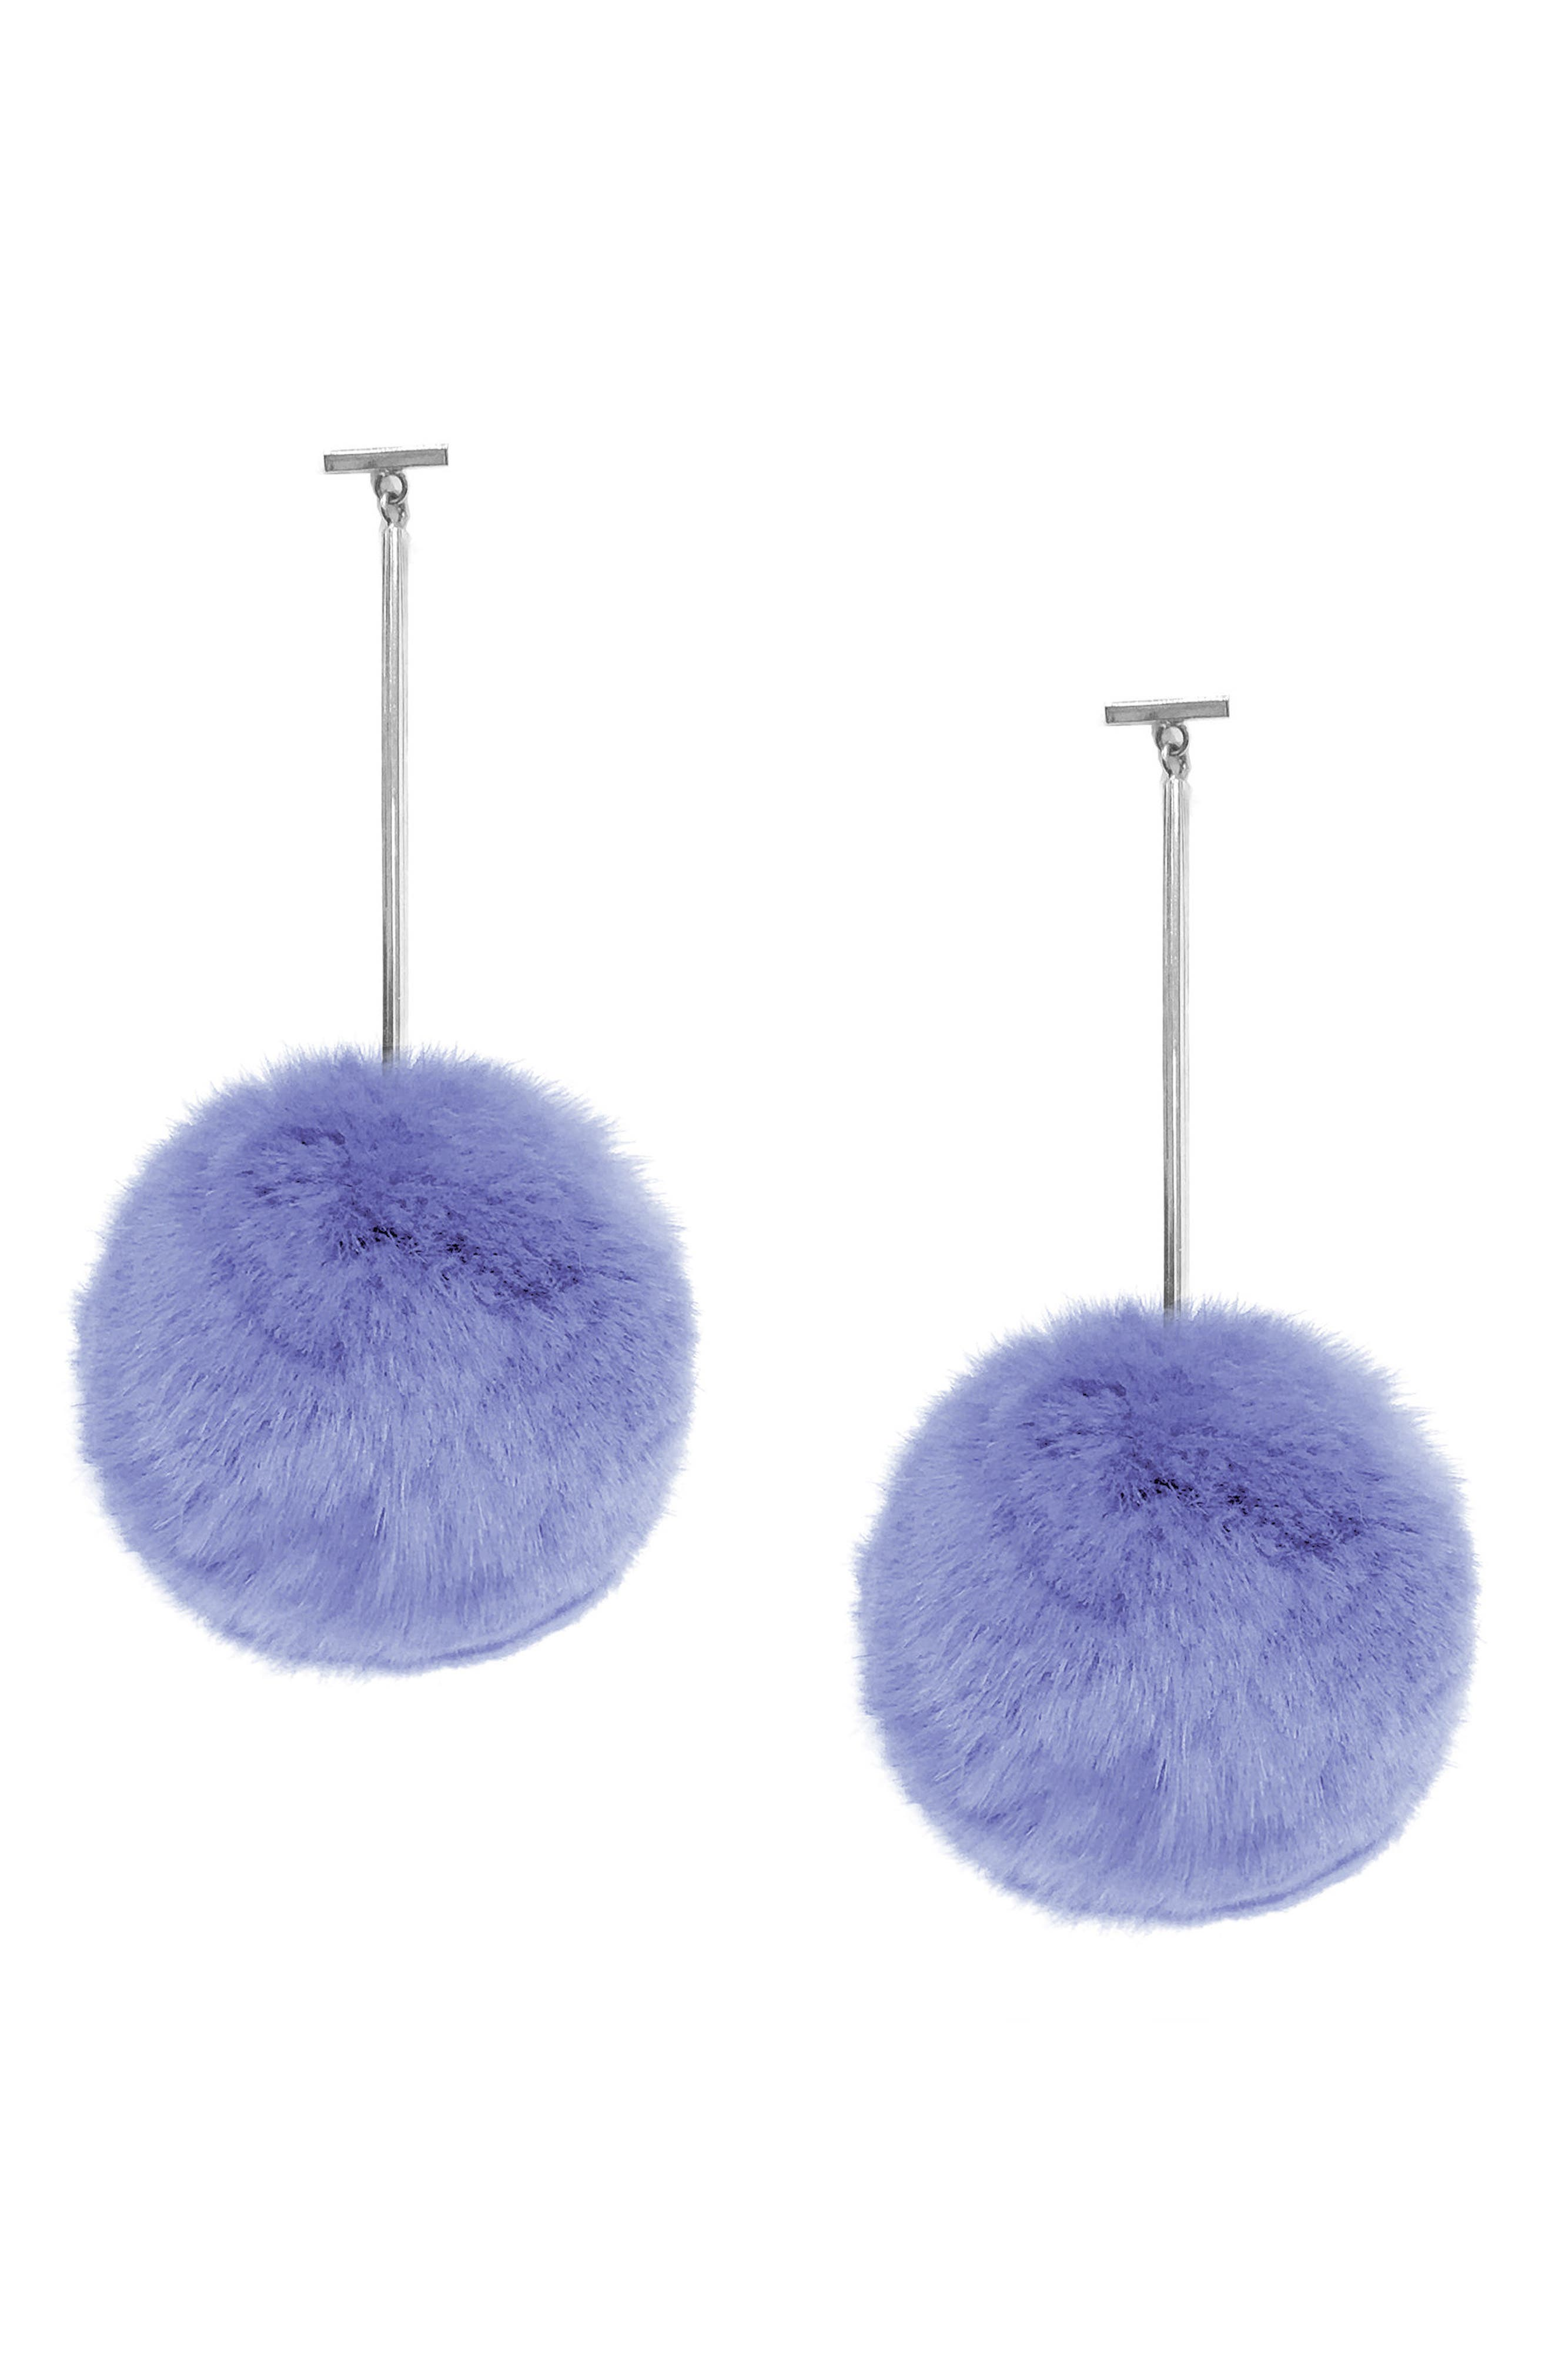 Pompom Drop Earrings,                         Main,                         color, Silver/ Ice Blue